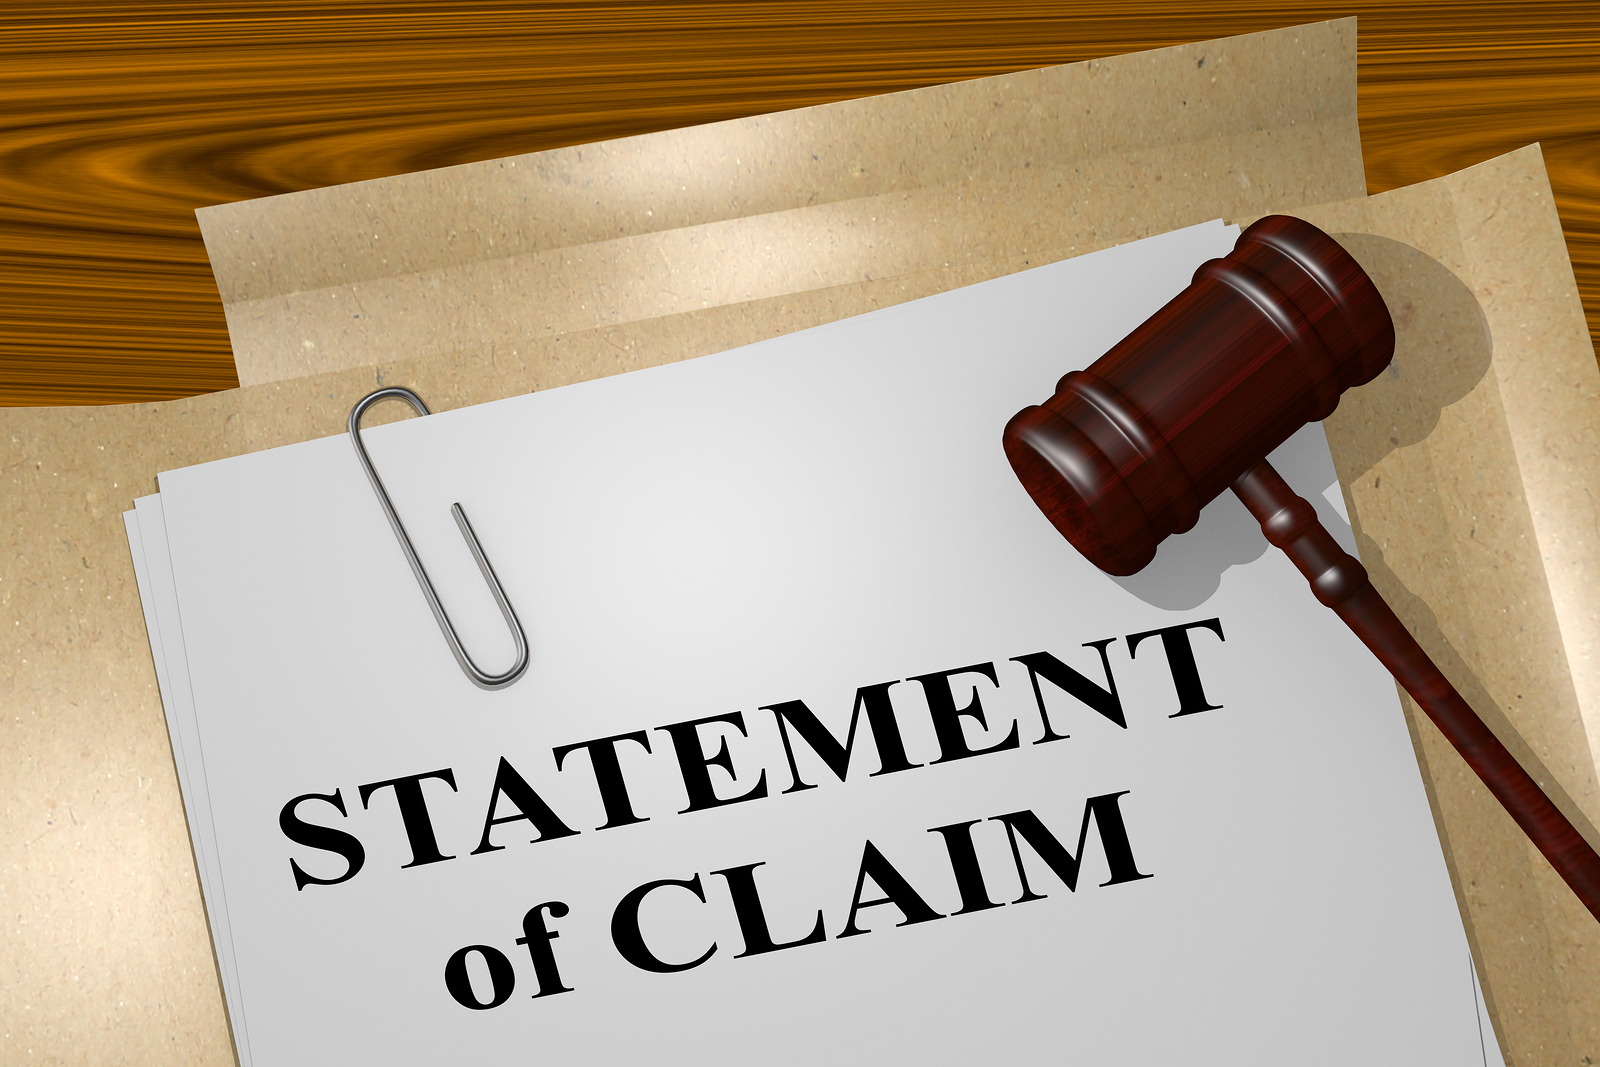 Statement of Claim